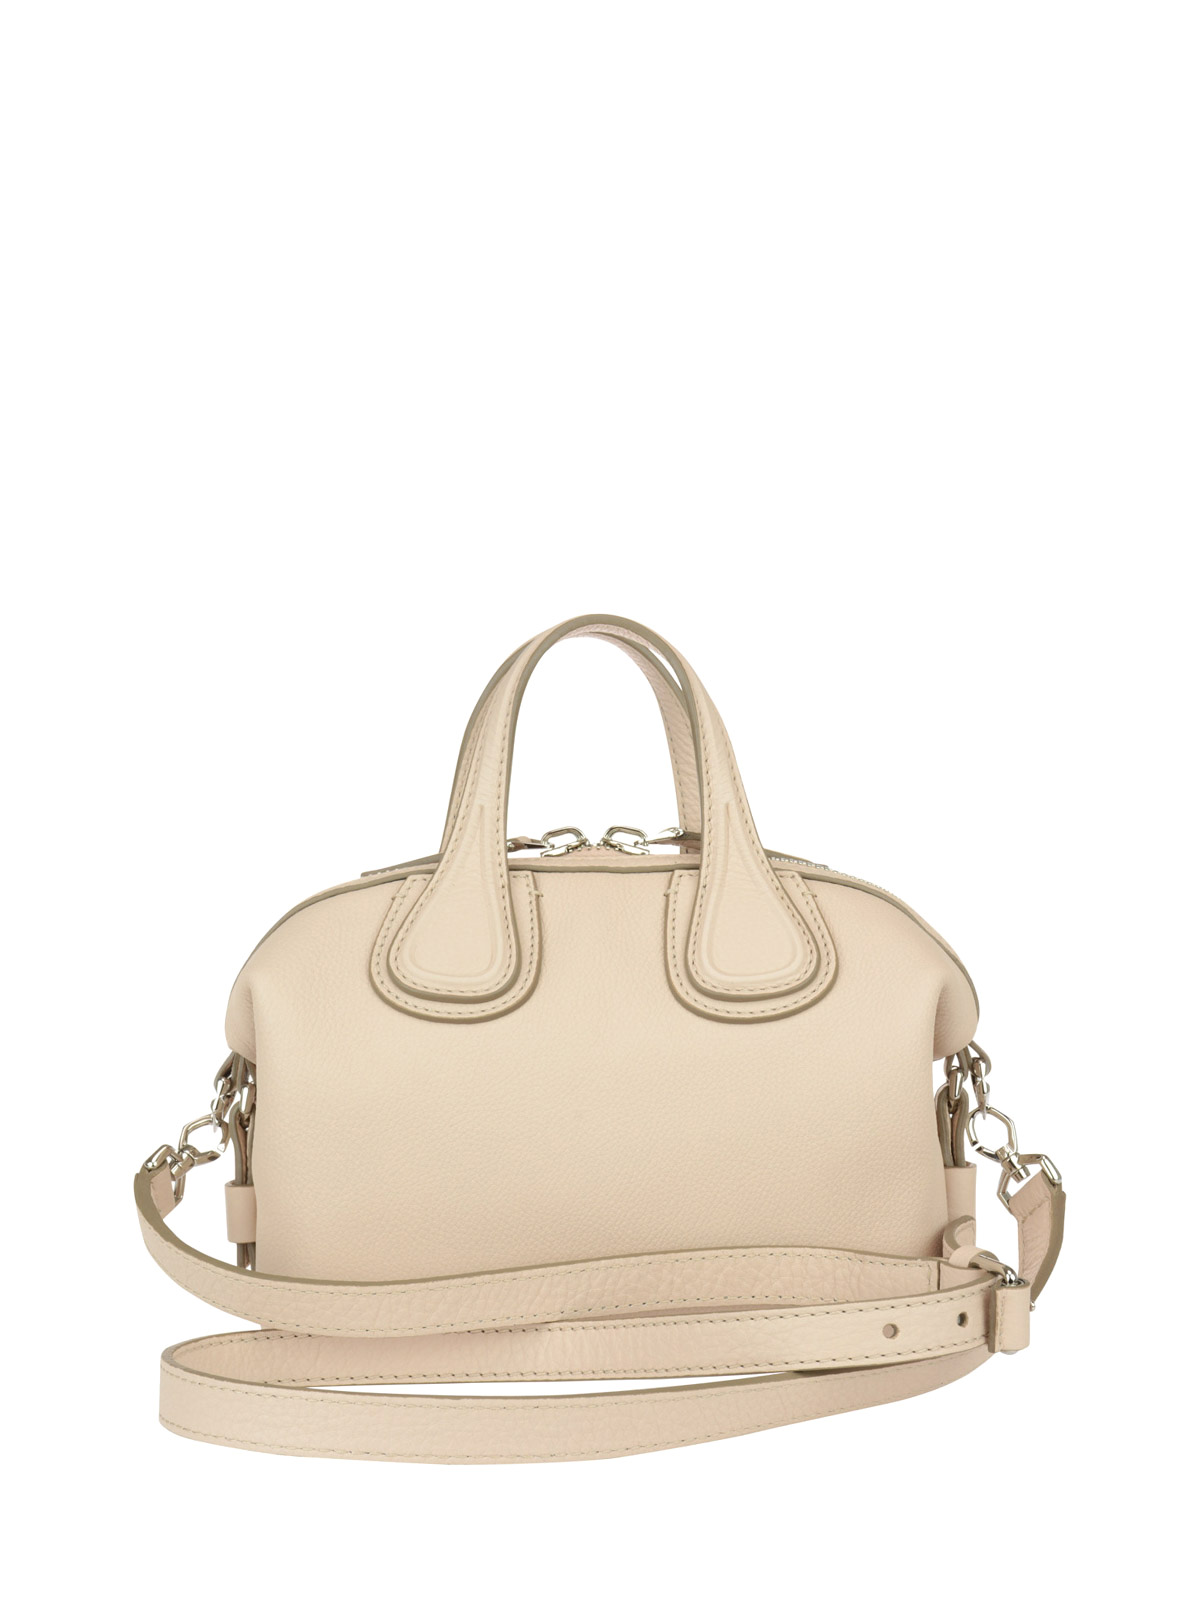 747857179c4c Givenchy - Micro Nightingale leather bag - bowling bags - BB05095025657